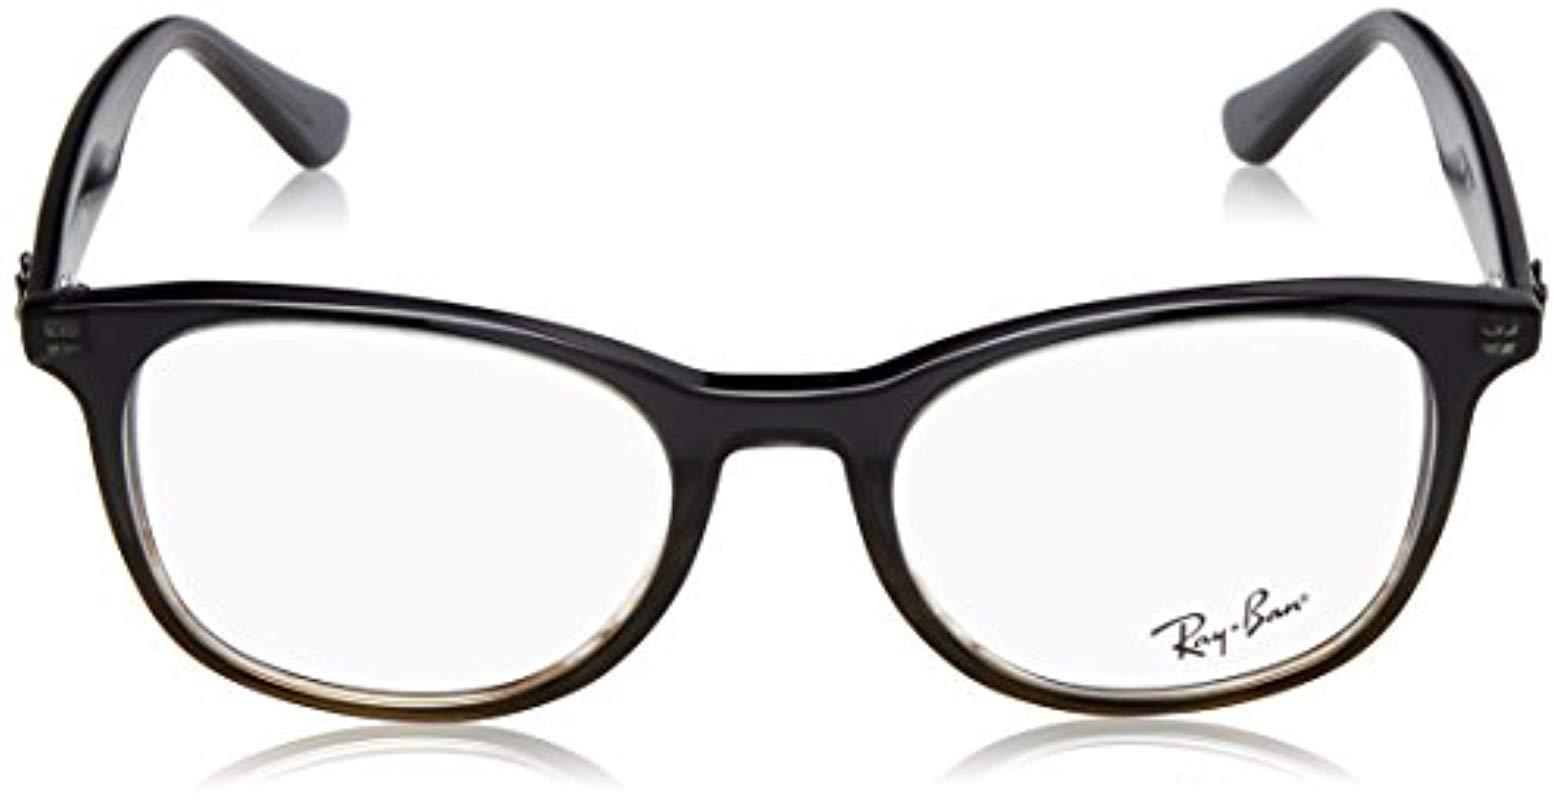 0c4497d07a Ray-Ban - Gray Rx5356 5766 52 Glasses In Grey On Striped Brown Rx5356 5766.  View fullscreen